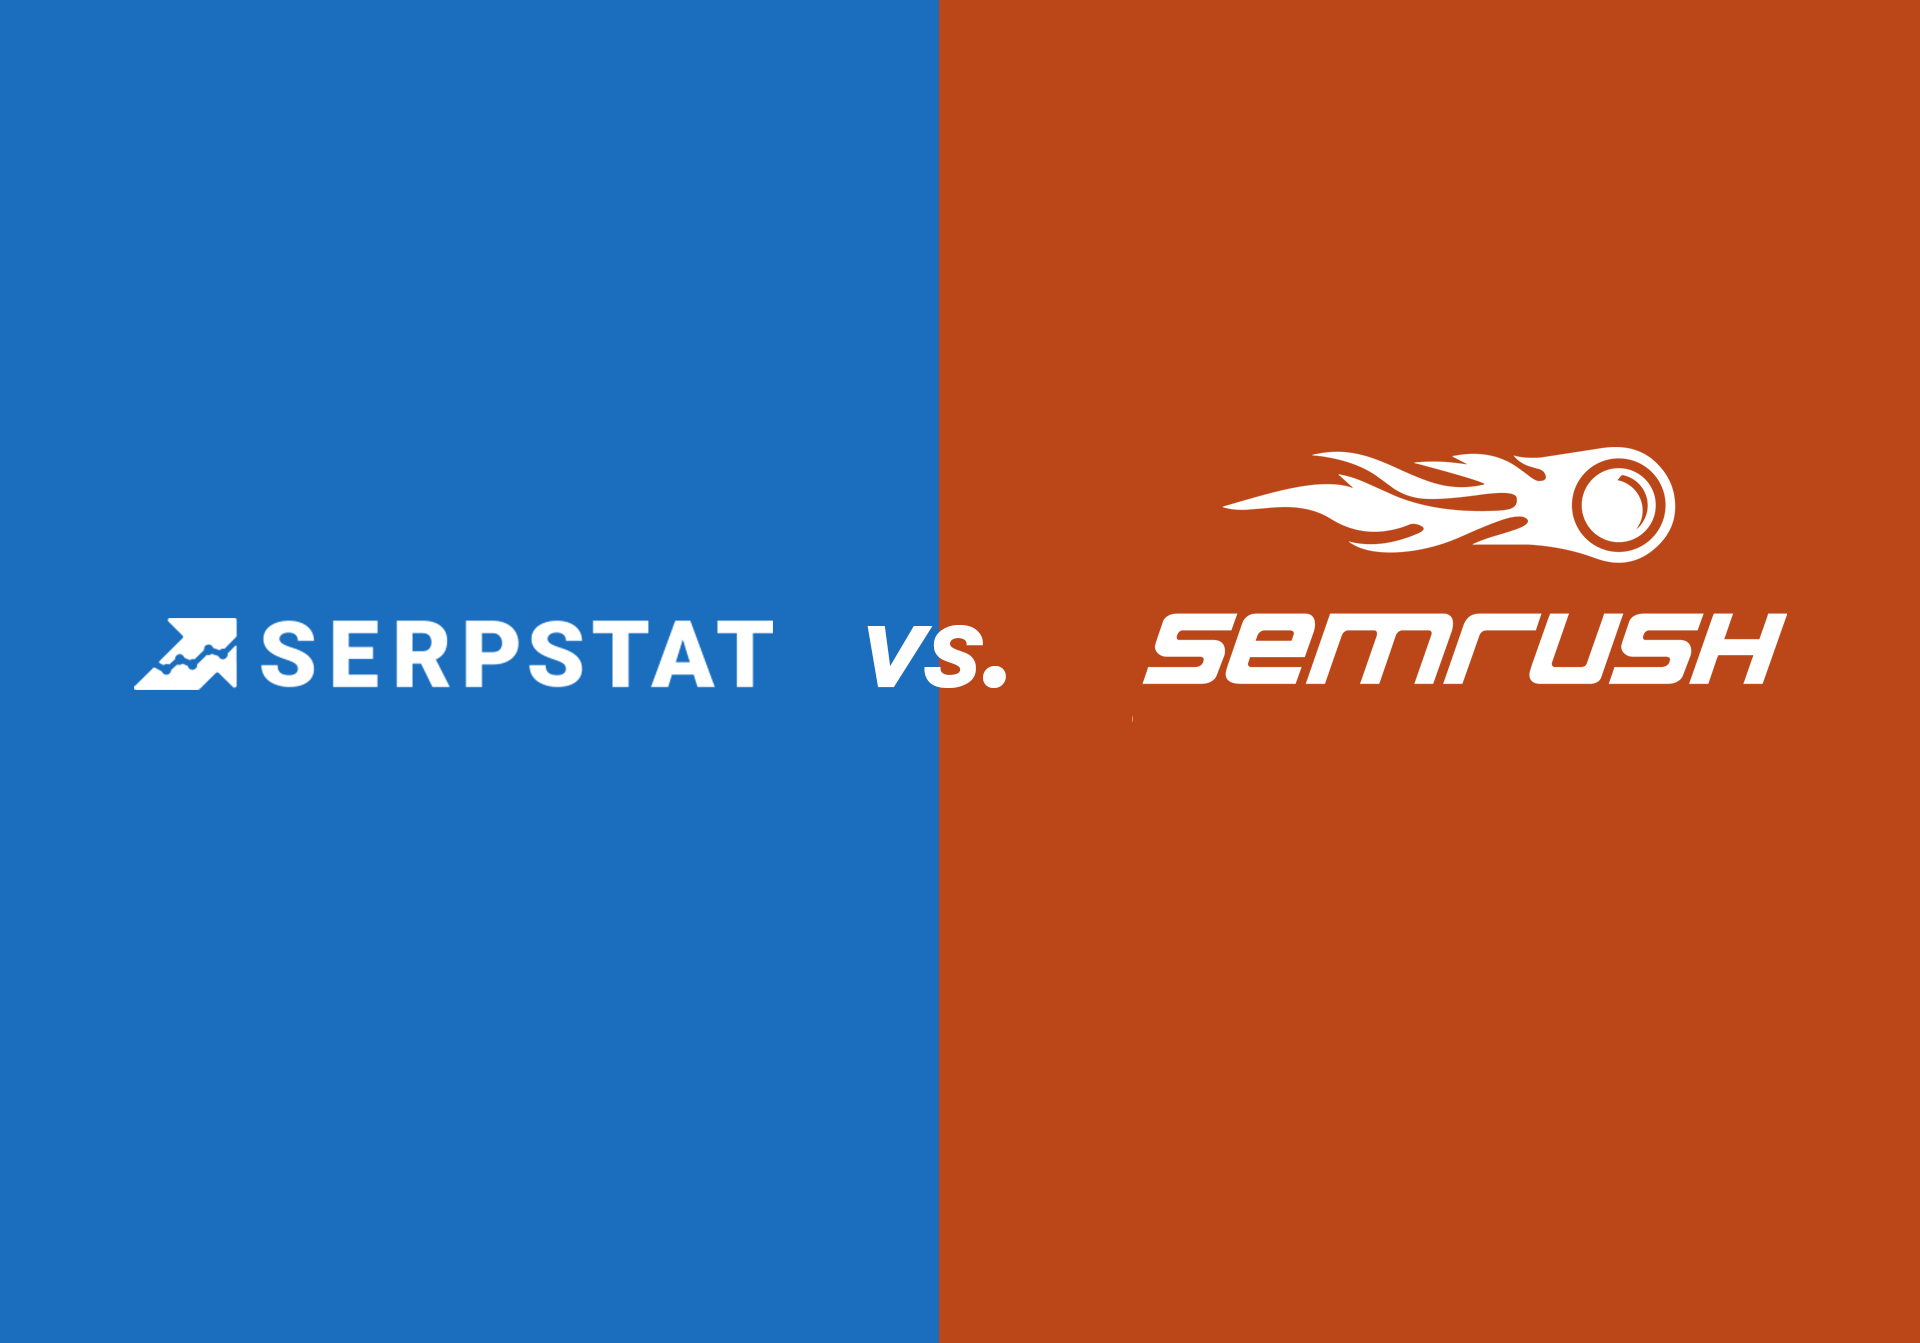 Cheap Seo Software Semrush Price Youtube